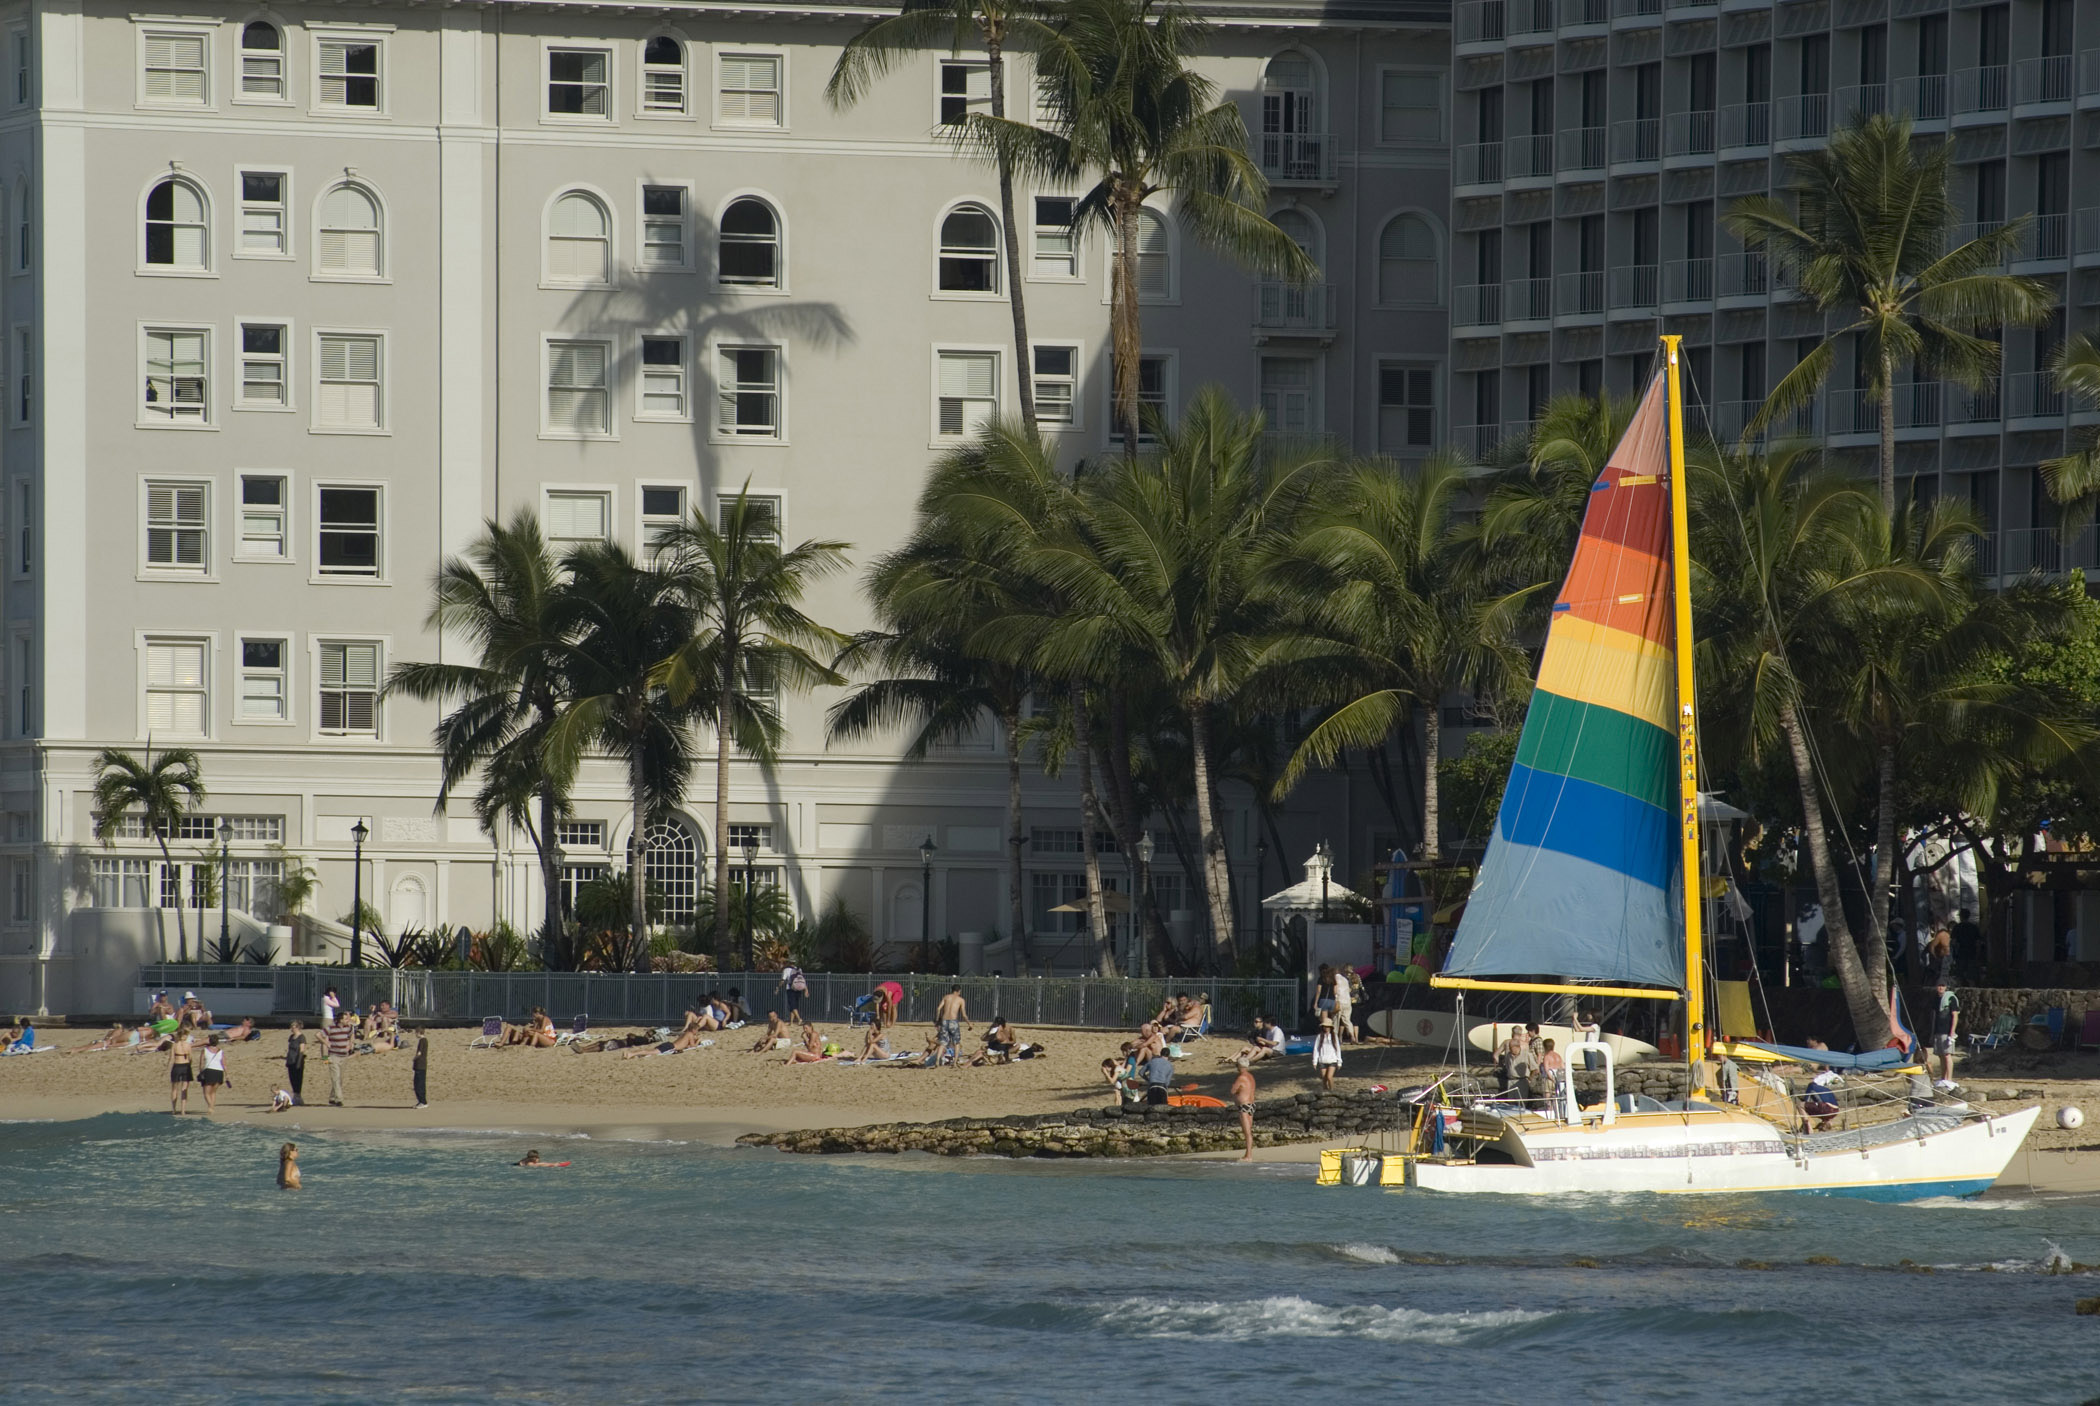 Colorful Sailboat on Beach Shore in Waikiki, Hawaii